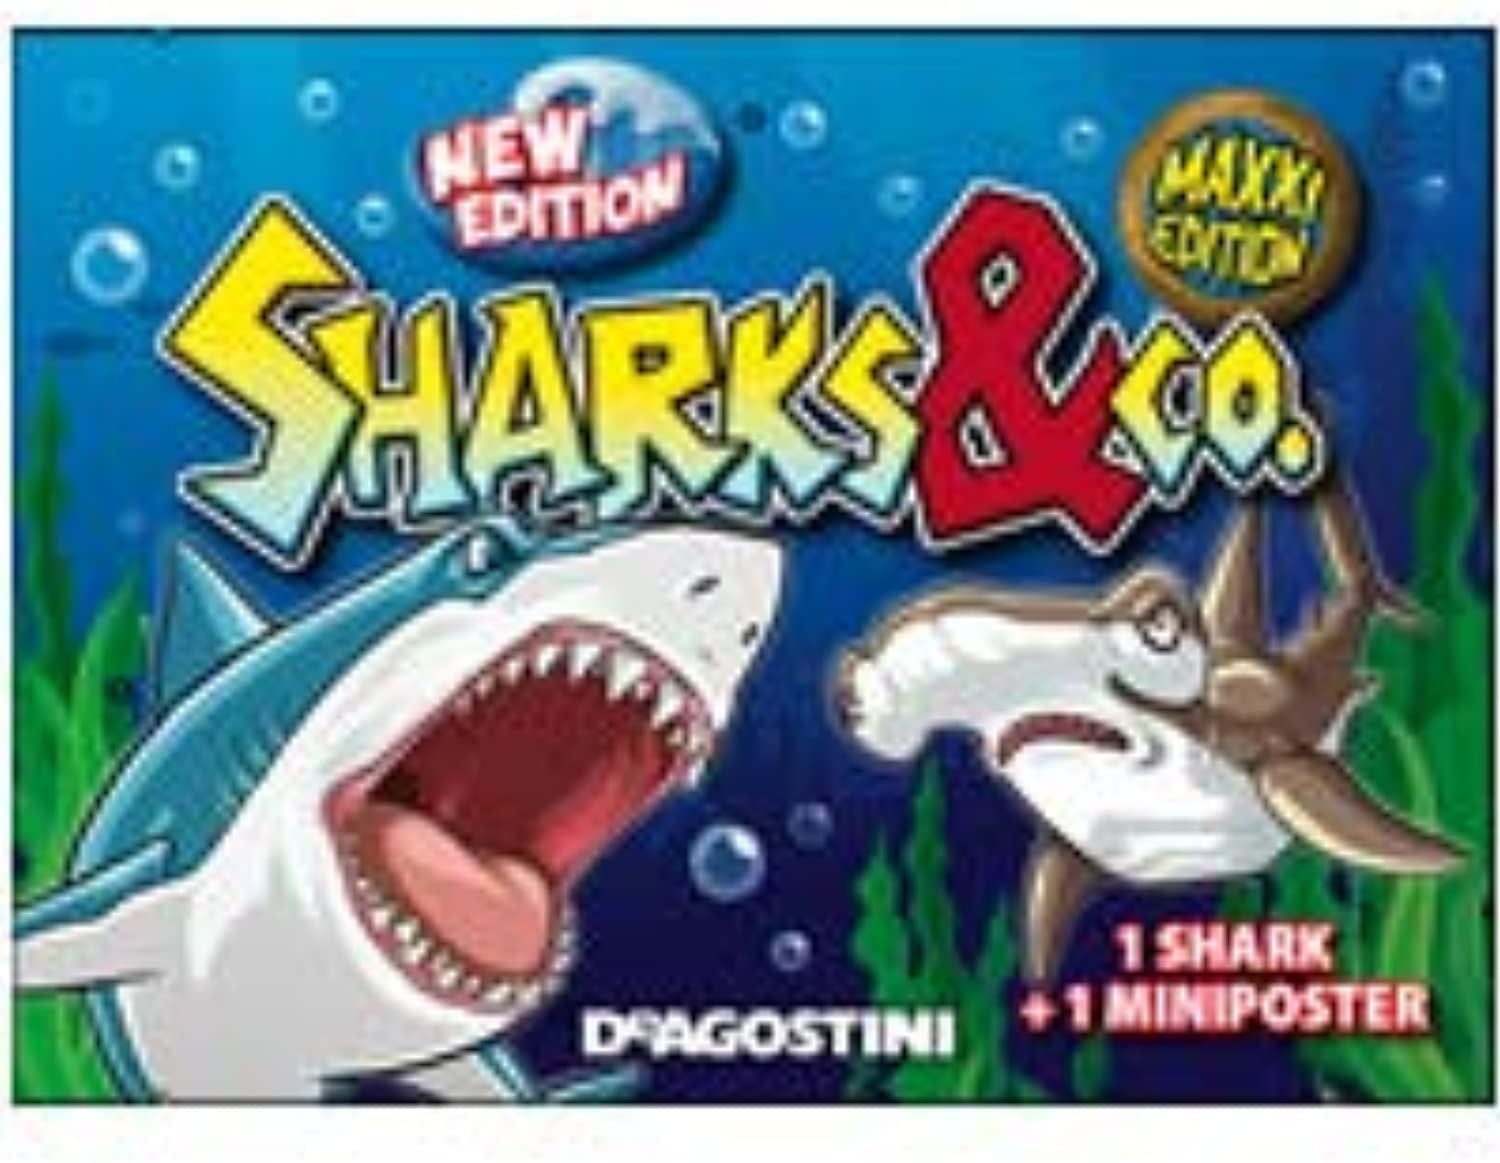 & Co Sharks Maxxi Edition Blind Pack